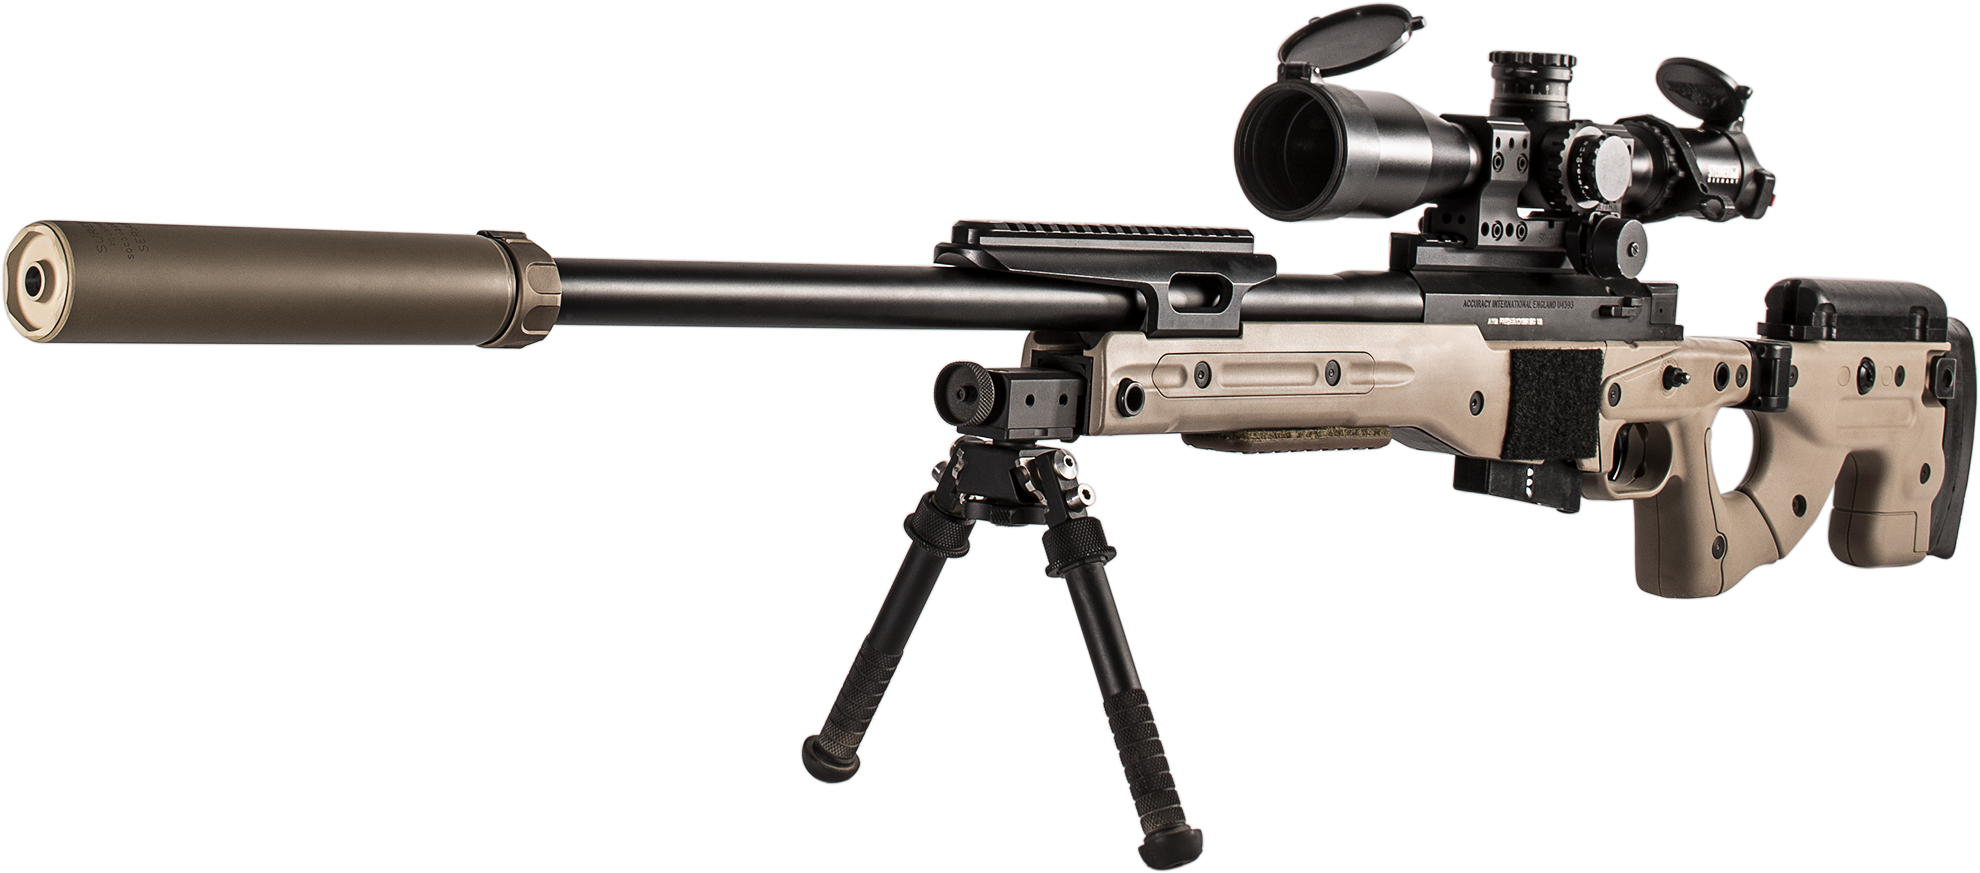 SureFire SOCOM260-Ti Dark Earth on bolt-action rifle